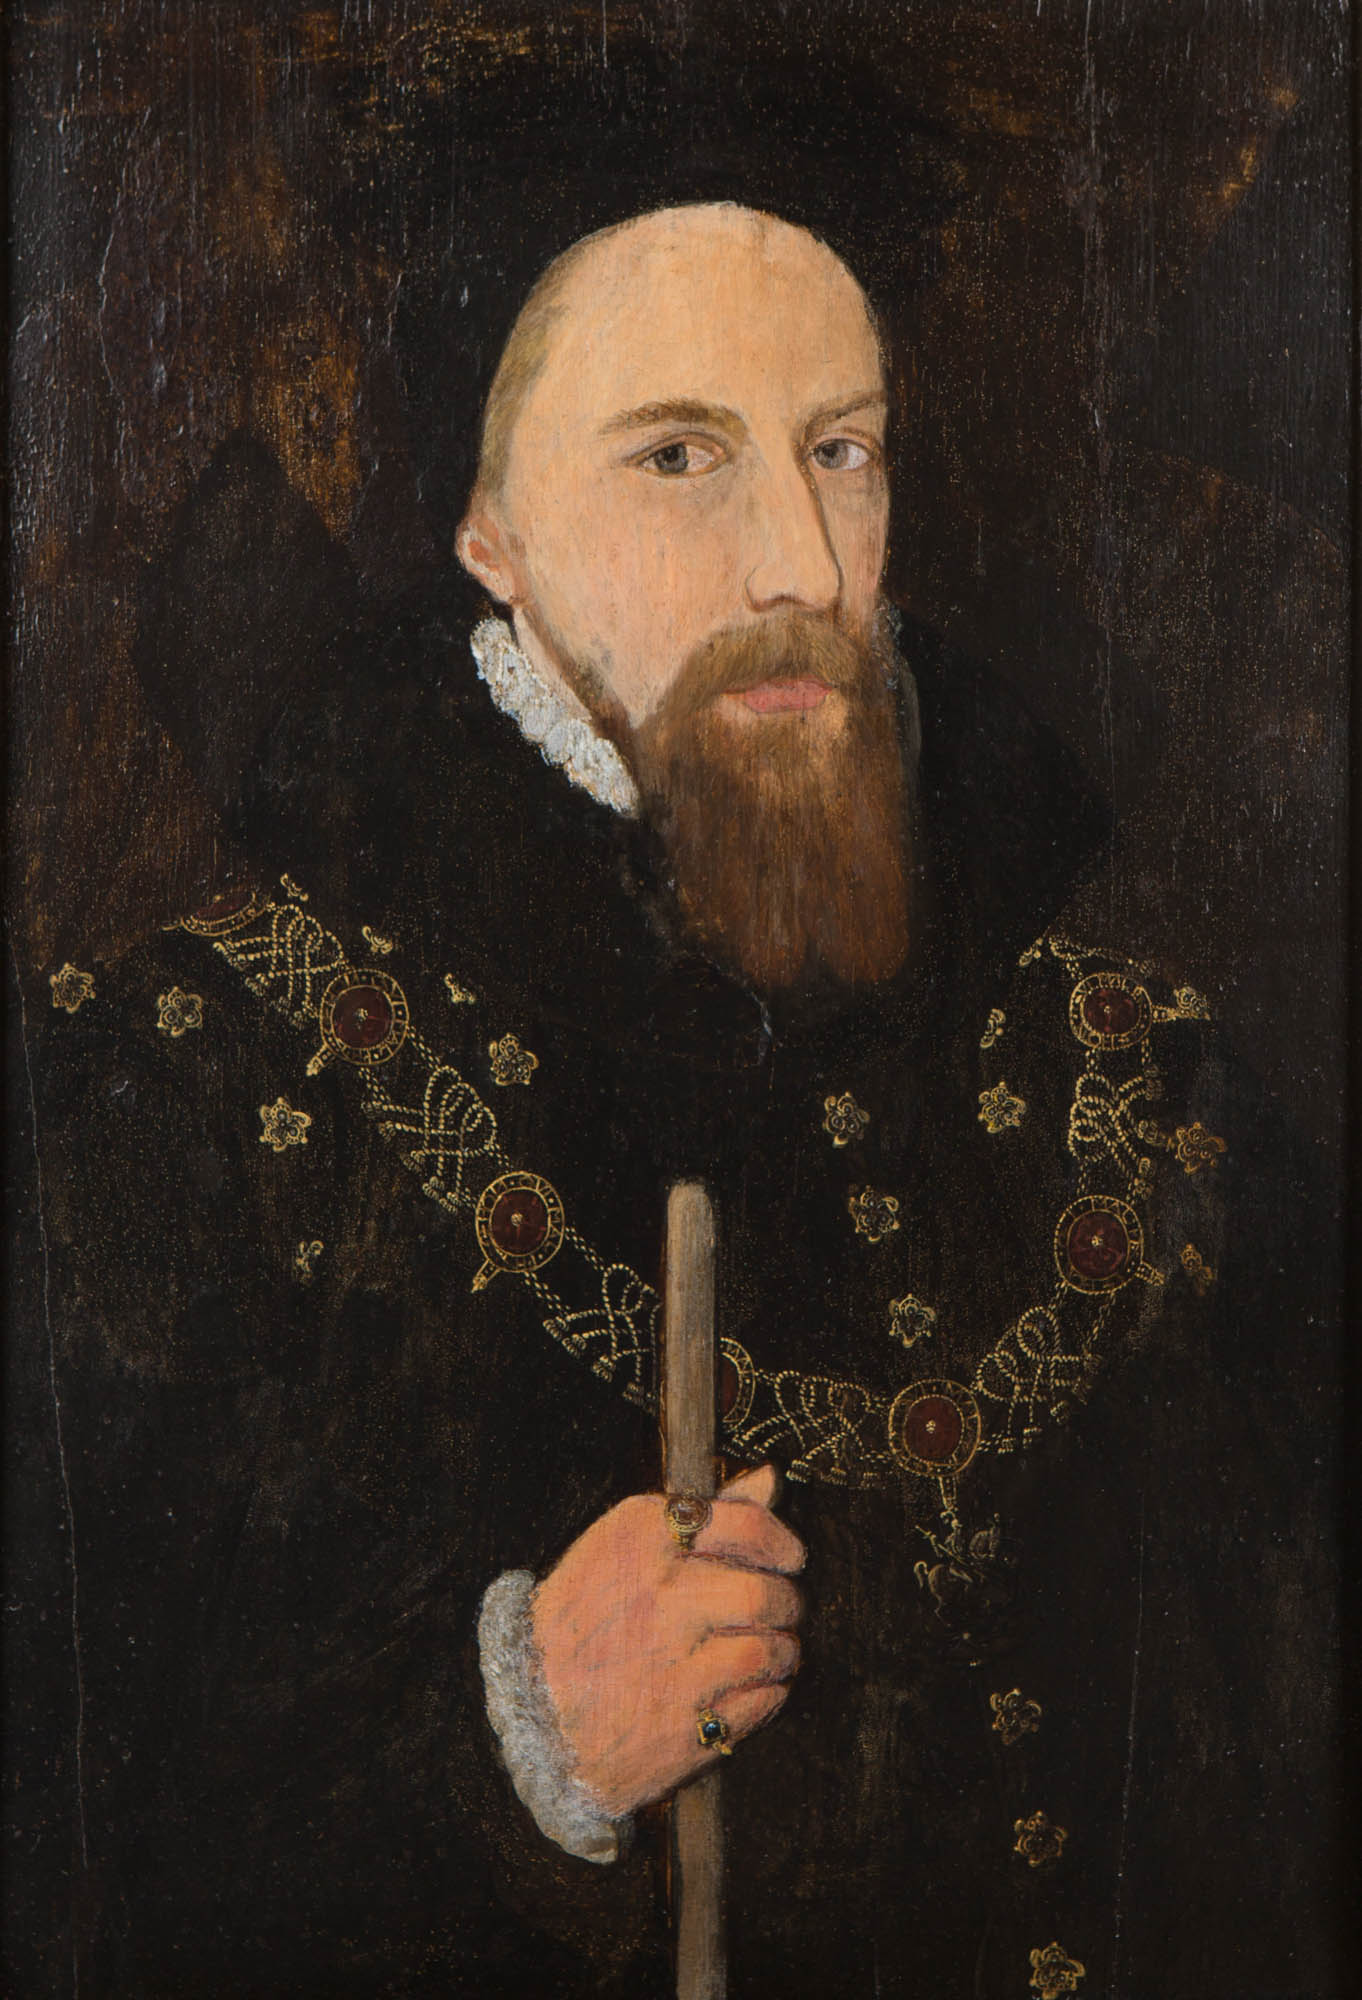 Portrait of William Cecil, Lord Burghley, English School, late 16th Century.